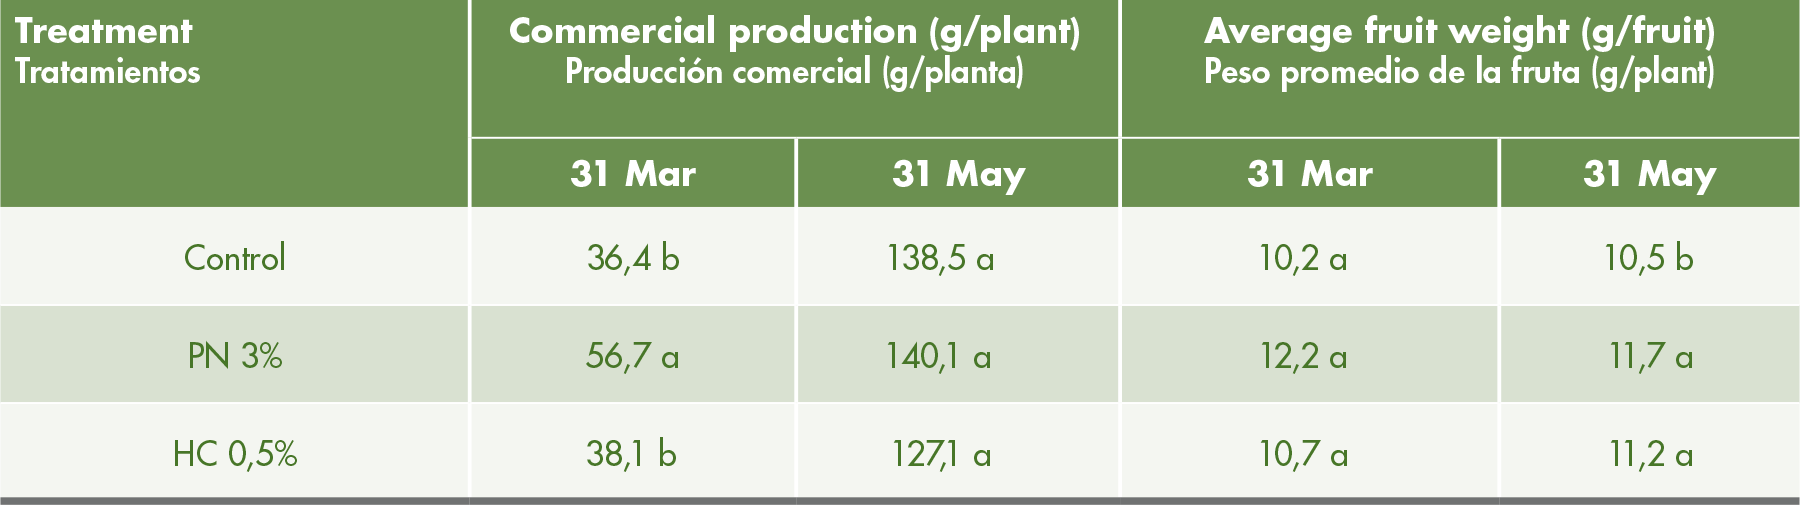 Commercial production and average fruit weight after spray application directly to the crown of potassium nitrate